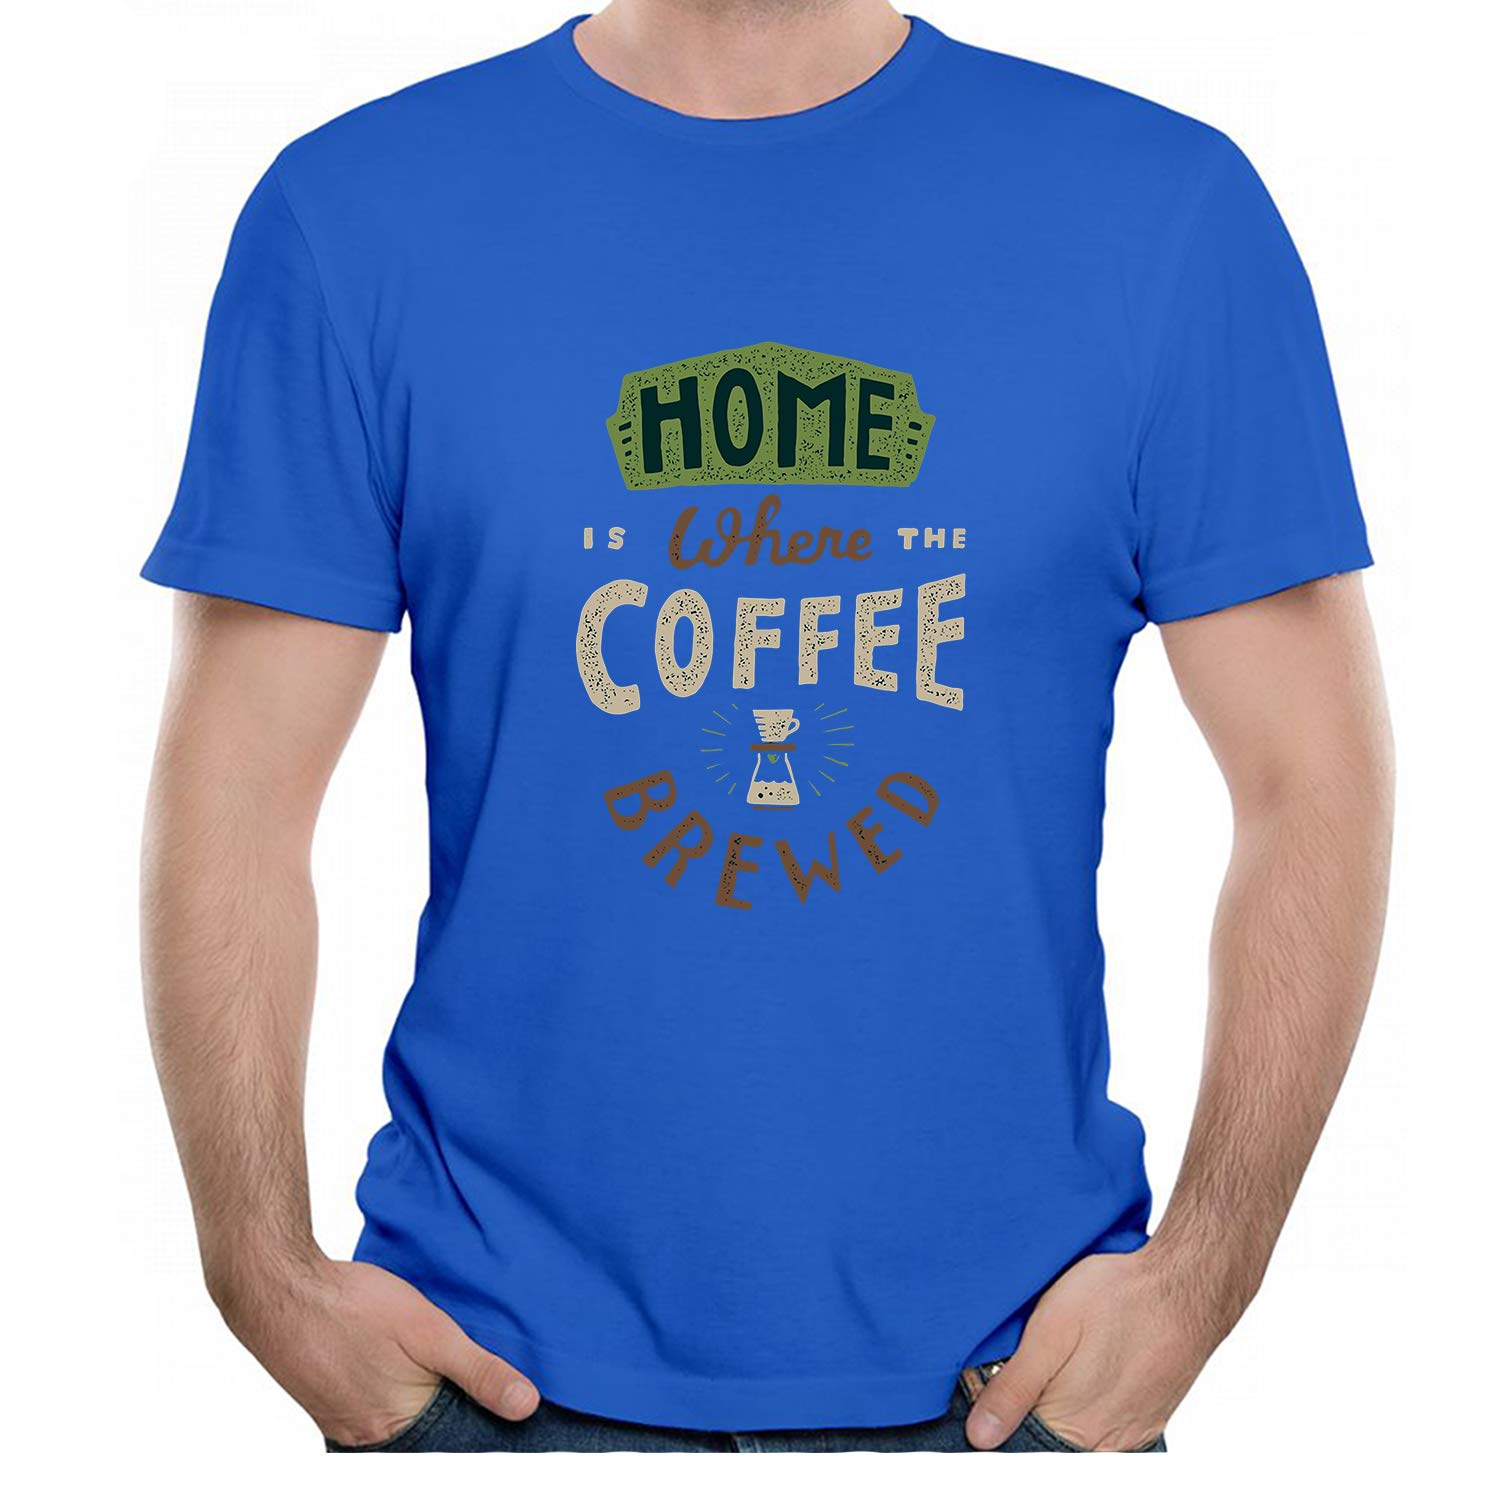 Jackdona Home Coffee Brewed Graphic Unisex S T Shirt 3409